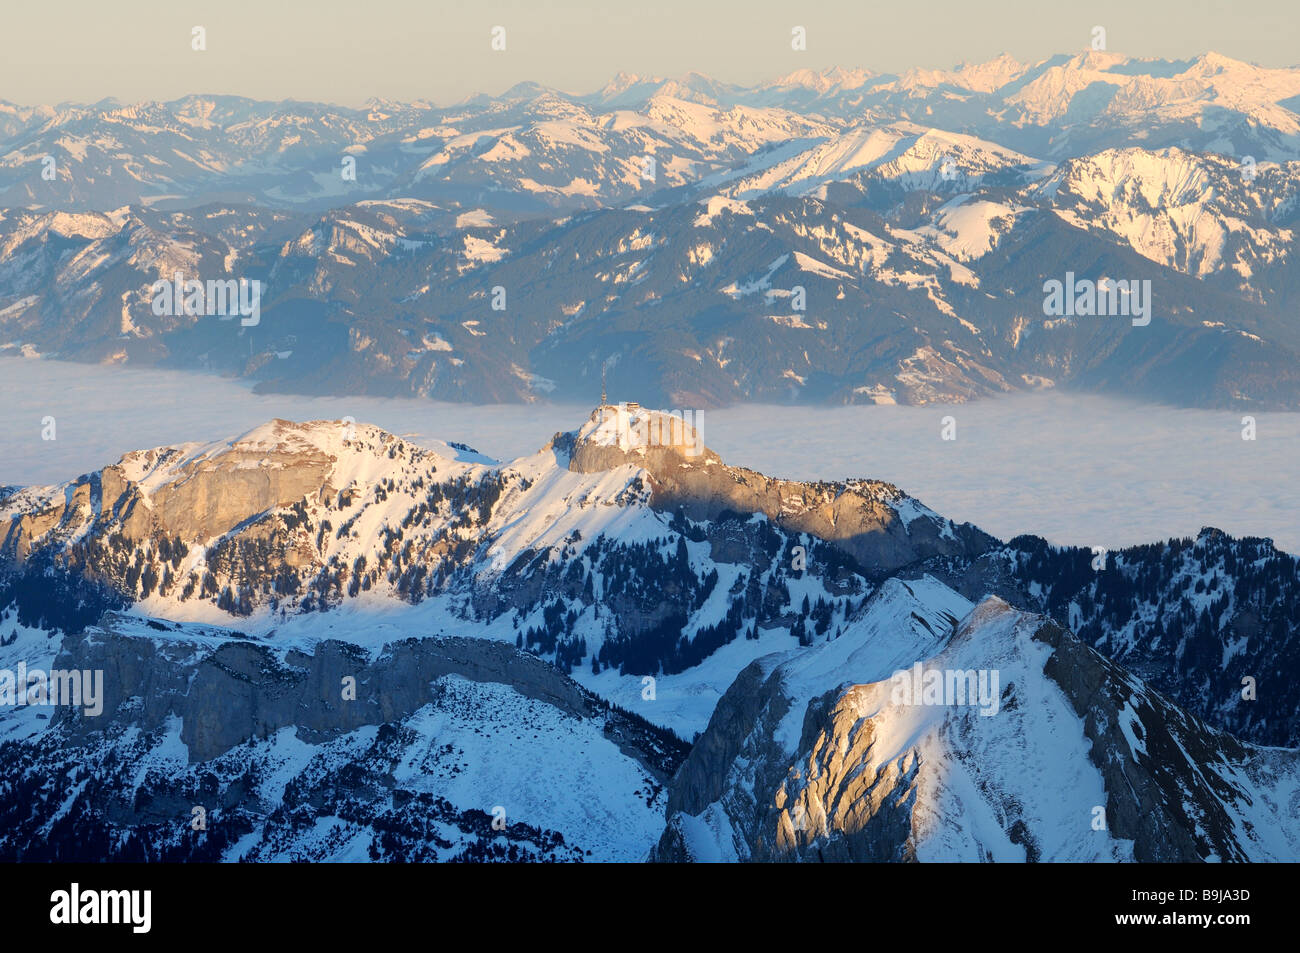 Mt Altmann and Mt Hoher Kasten in last daylight, between them the foggy Rheintal Valley, Canton of Appenzell Innerrhoden, - Stock Image